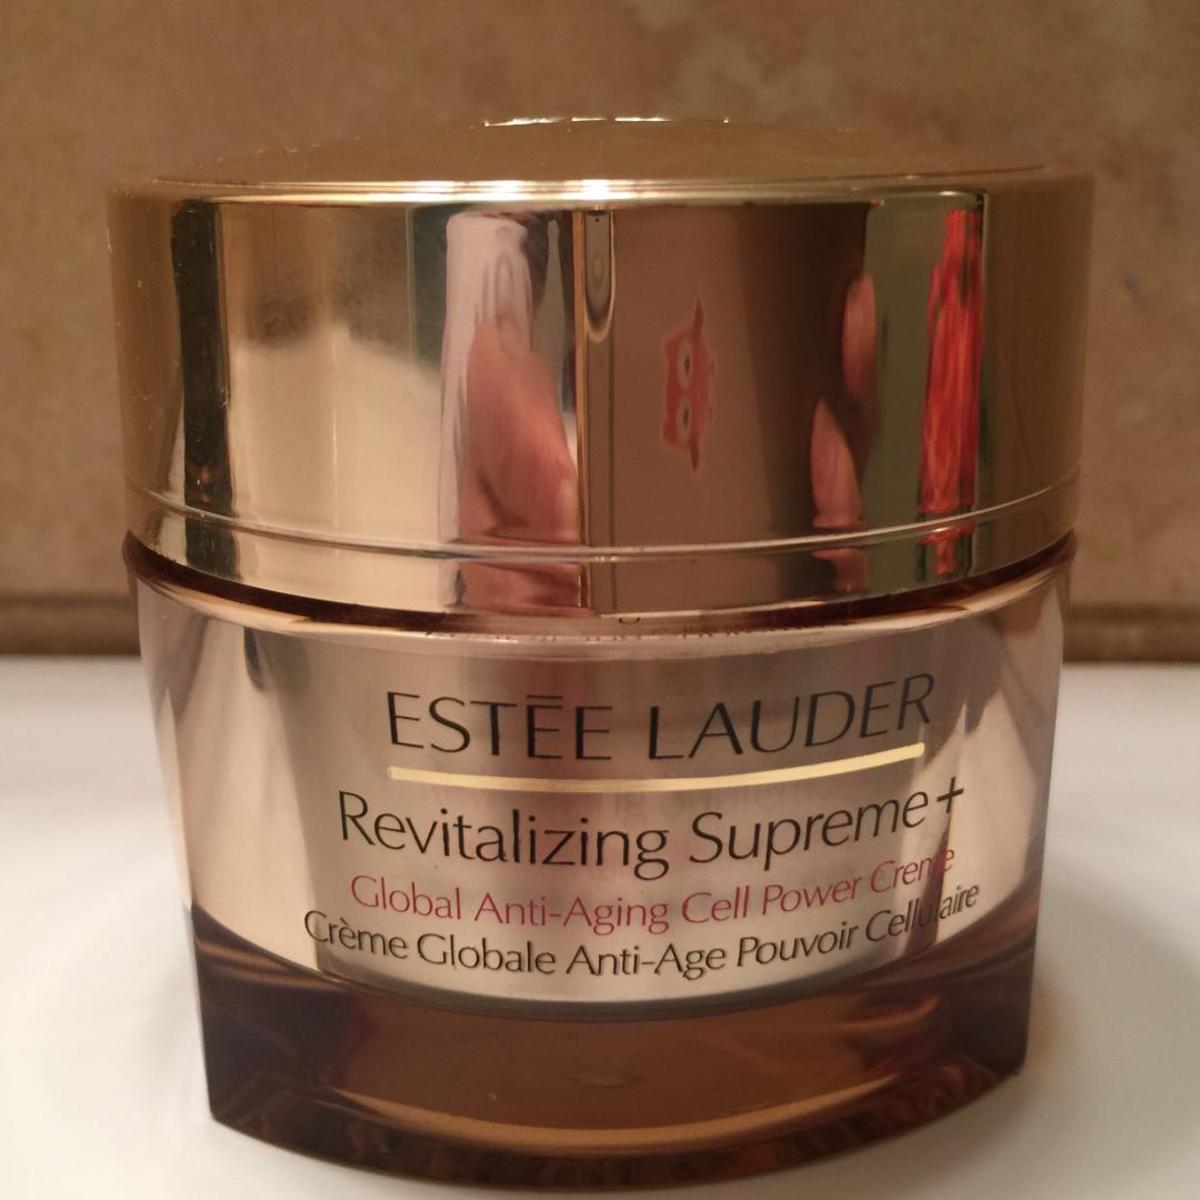 Product Review: Estee Lauder Revitalizing Supreme Global Anti-Aging Cell Power Creme